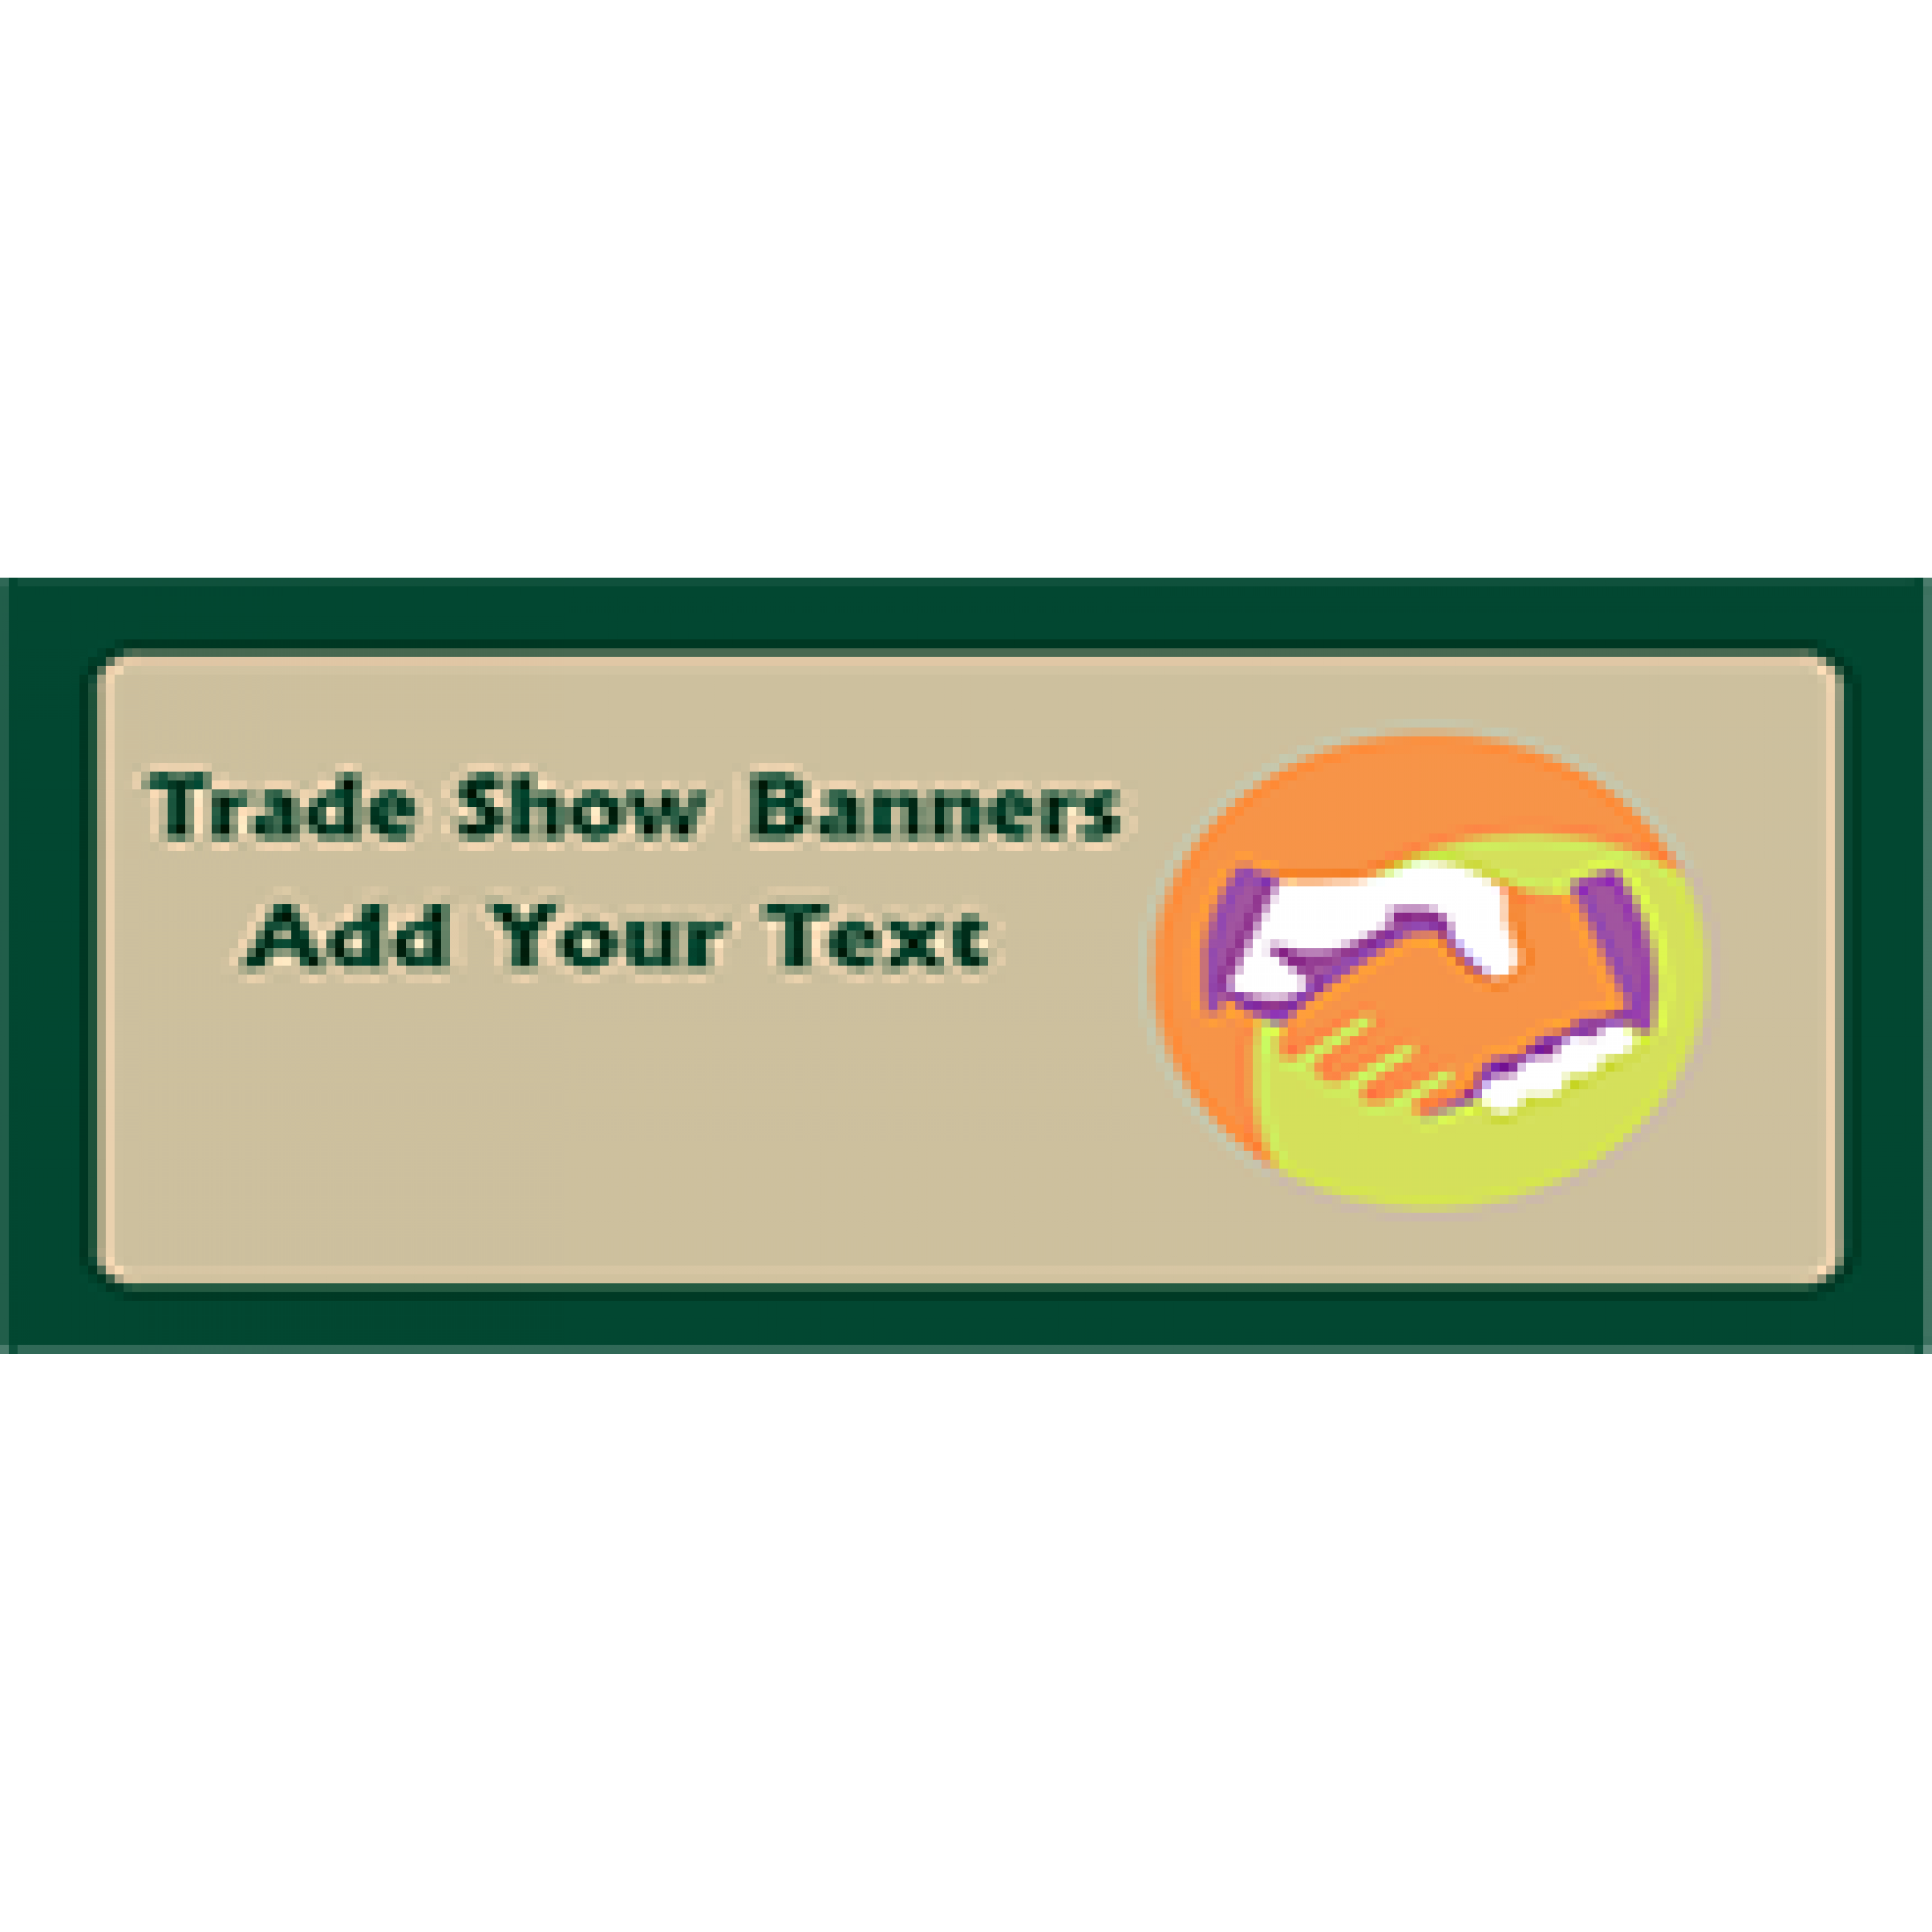 Trade Show Banner 48x96 inches